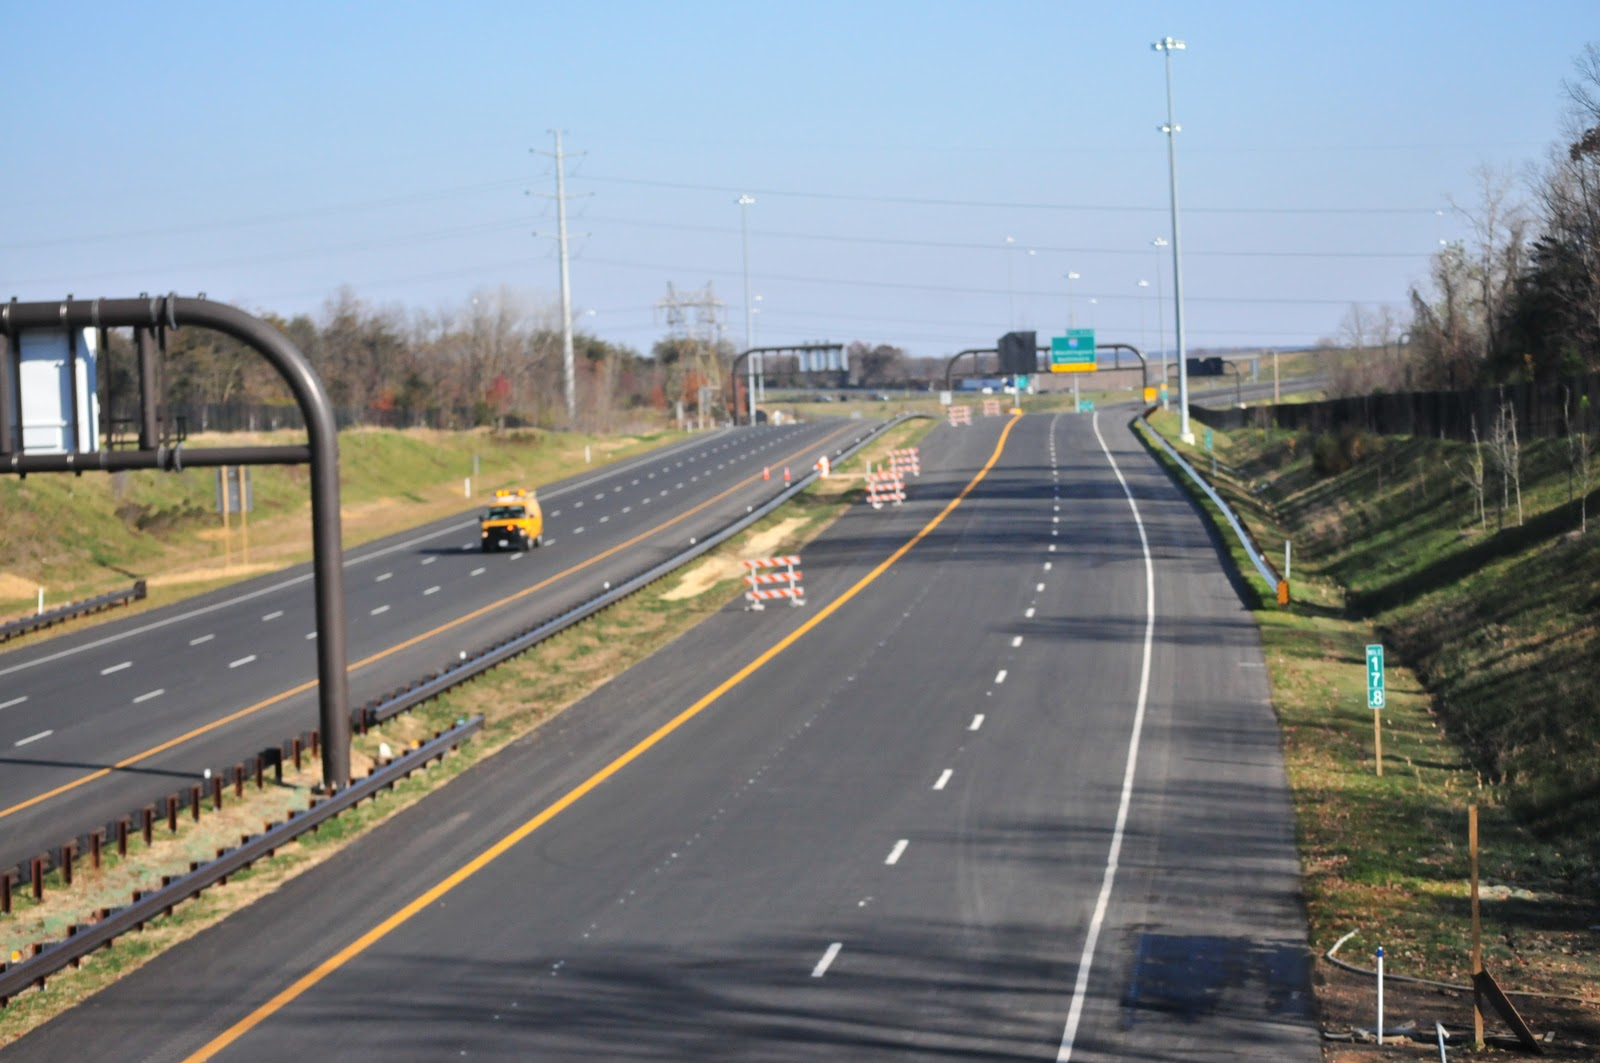 highway speed limits should be increased The speed limits on several highways in northwest minnesota will increase from  55 miles per hour to 60, according to the minnesota.